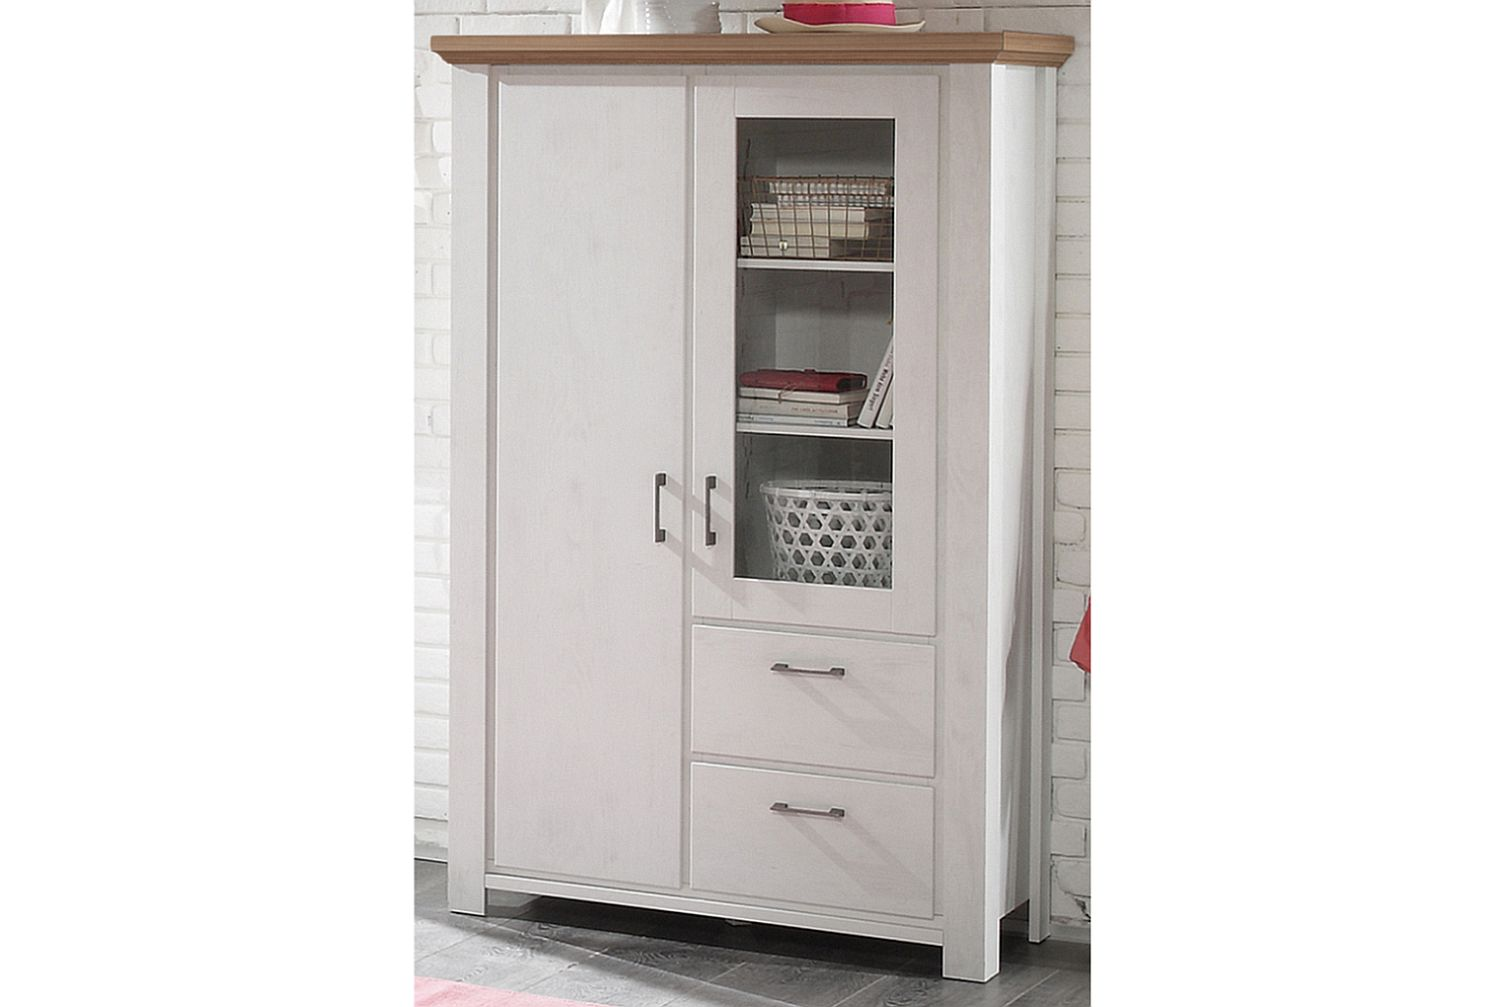 Highboard schrank kommode schr nke sideboard for Dekorfolie schrank